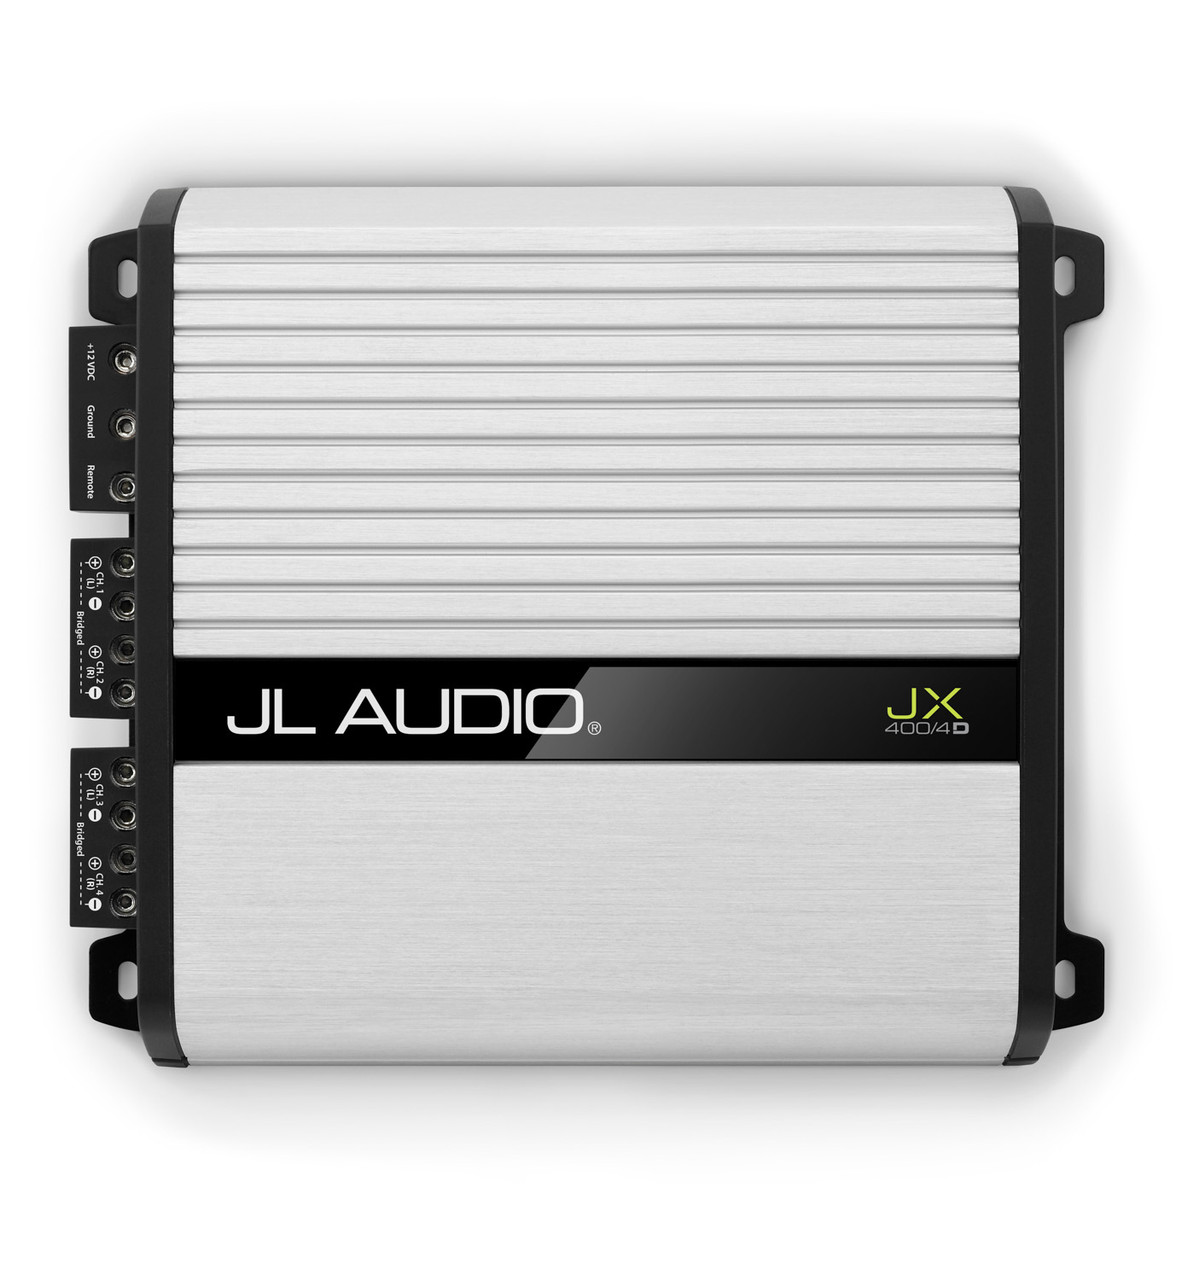 JL Audio Refurbished JX400/4D 4-channel Class D full-range amplifier